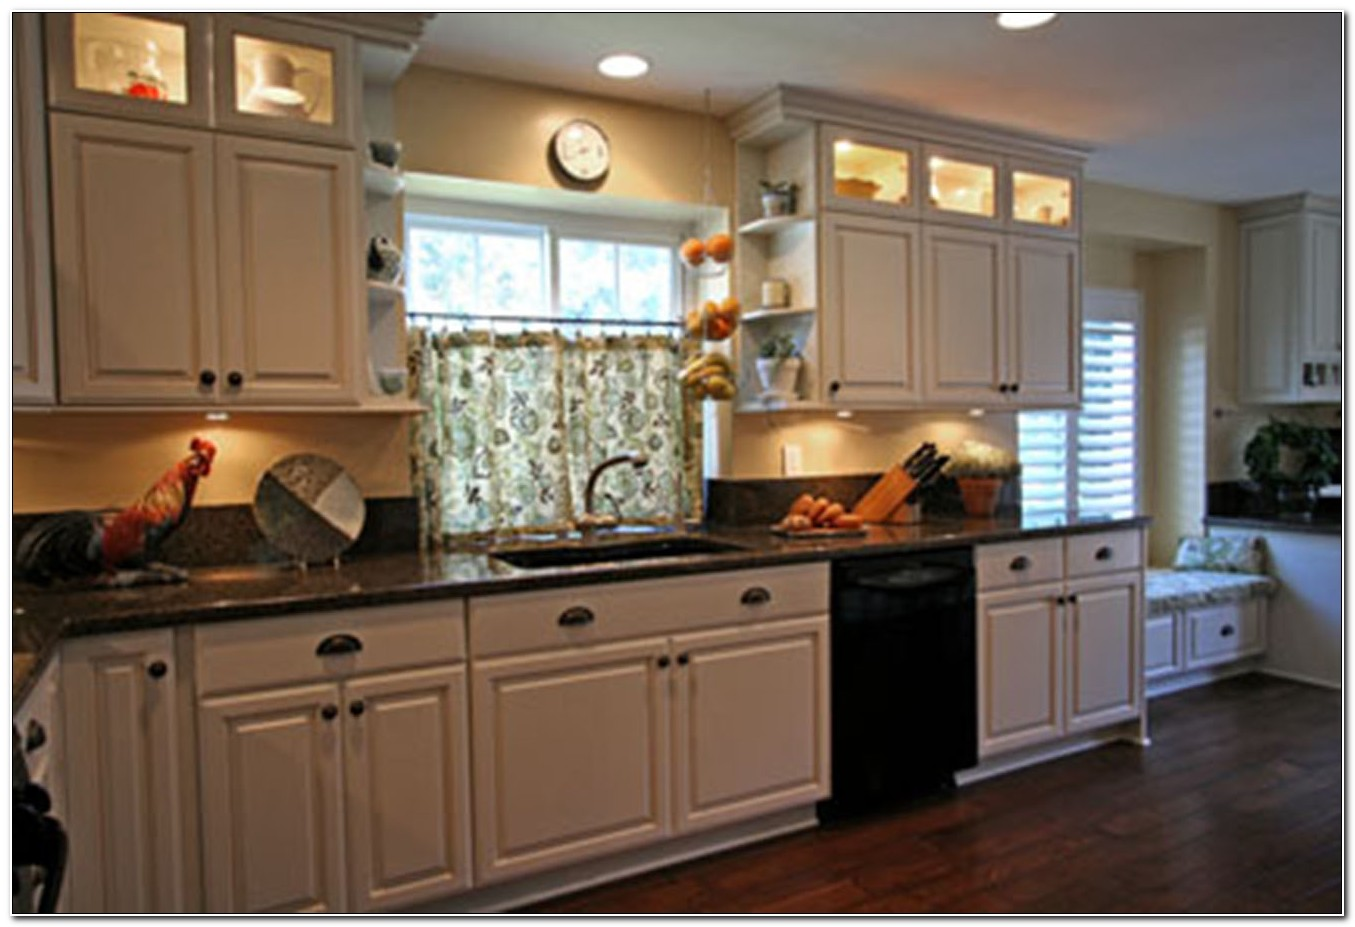 Cabinets With Glass Doors On Top